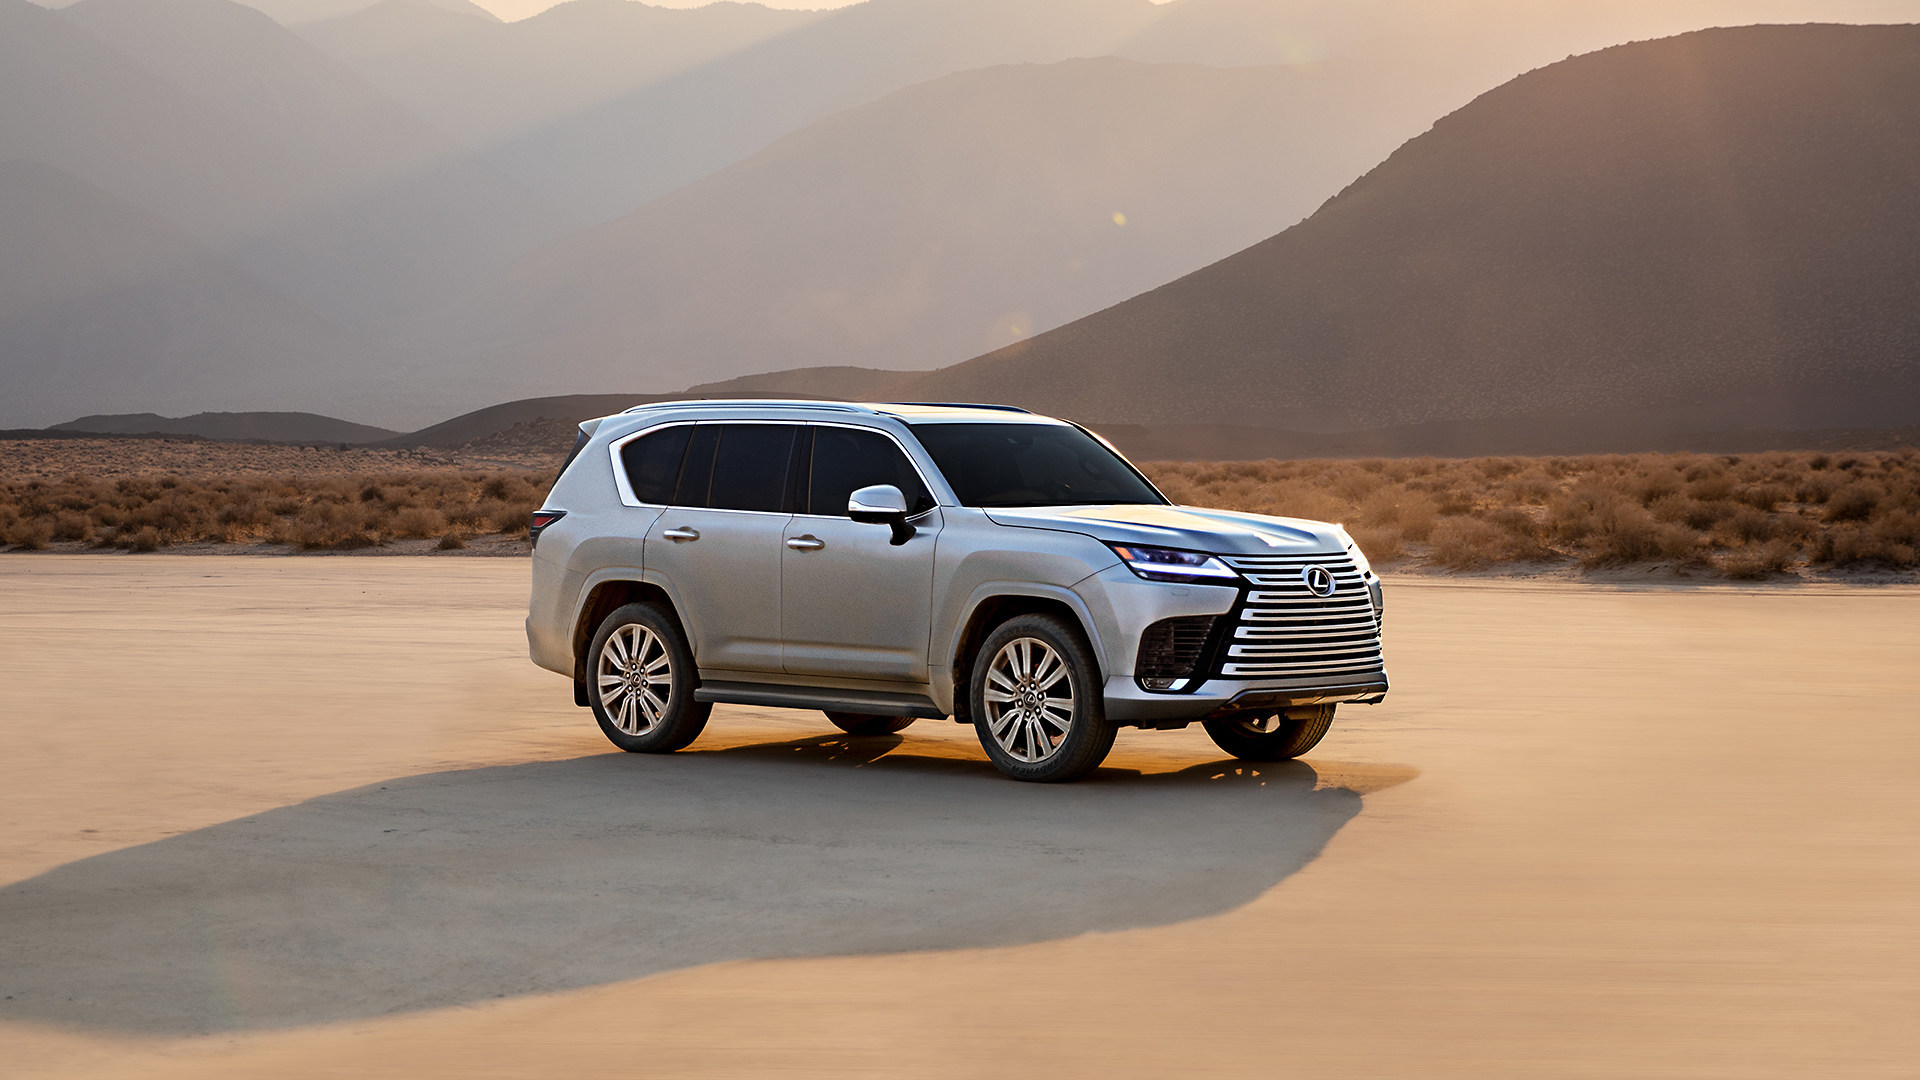 A Flagship SUV is Born: Introducing the All-New 2022 Lexus LX 600